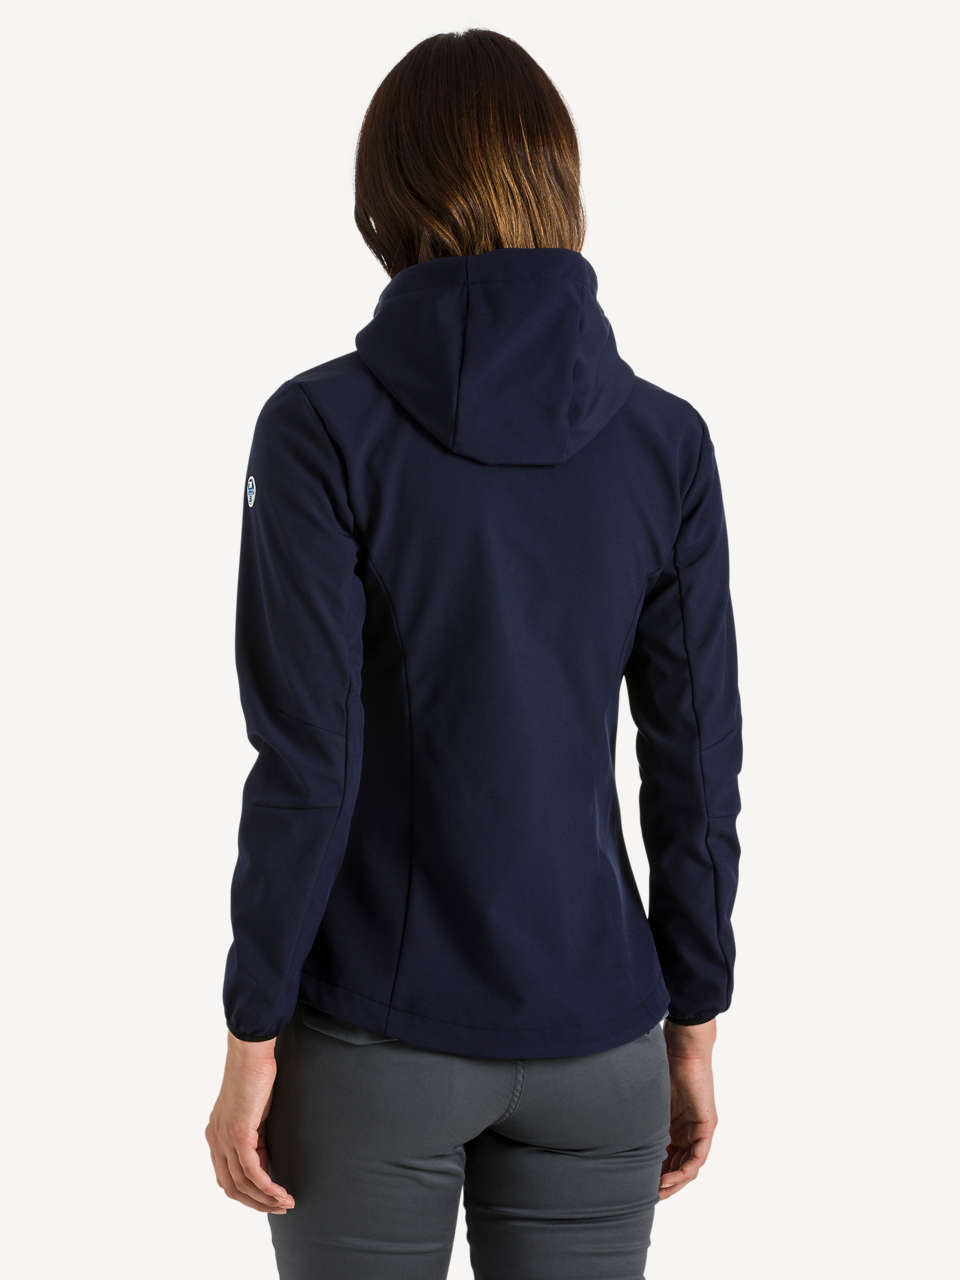 Storm Cheater hooded